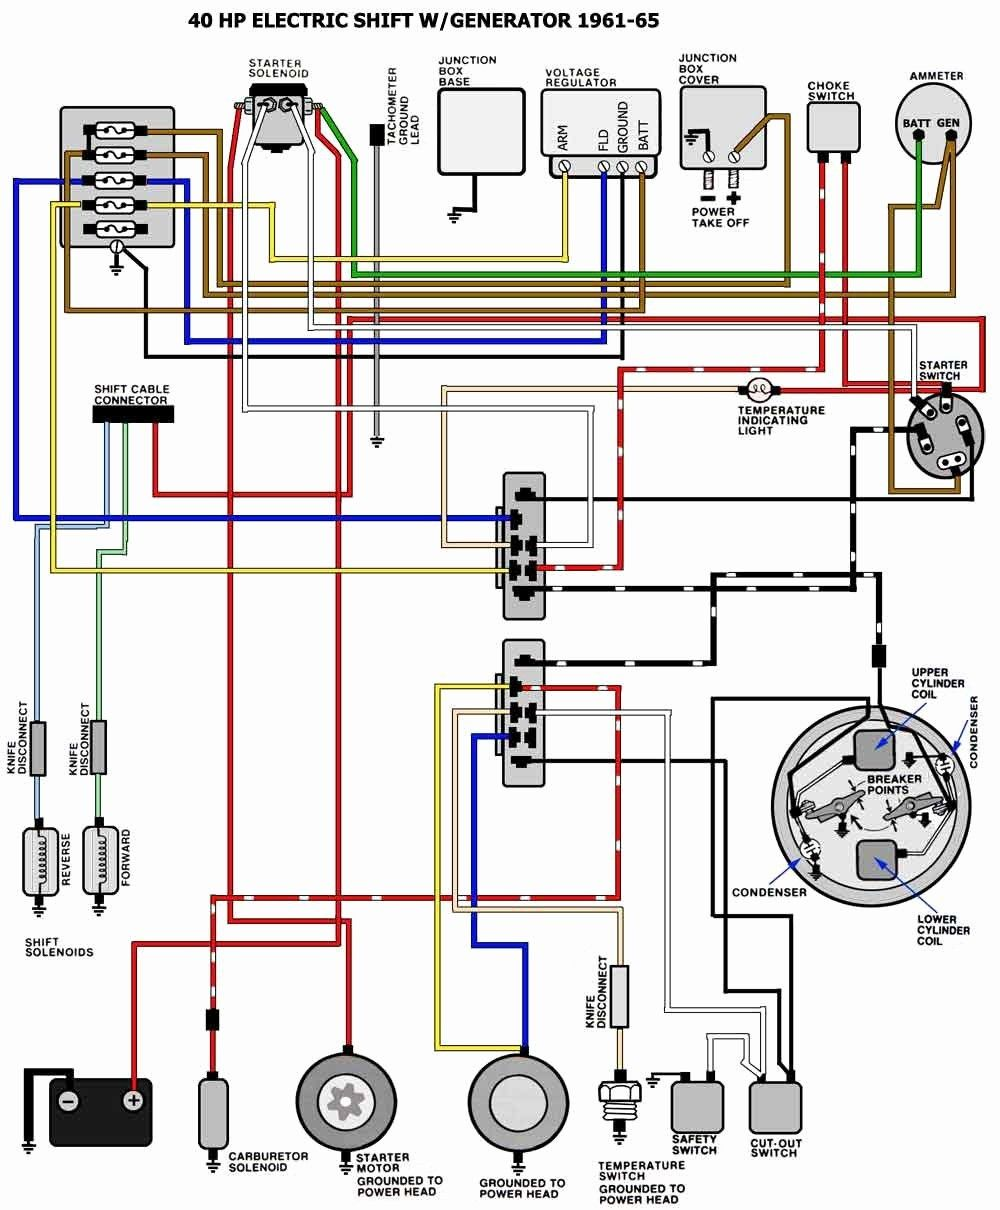 40 Hp Mercury Outboard Wiring Diagram New | Mercury outboard, Boat wiring,  Outboard | 1998 Mercury Outboard Wiring Diagram Free Picture |  | Pinterest